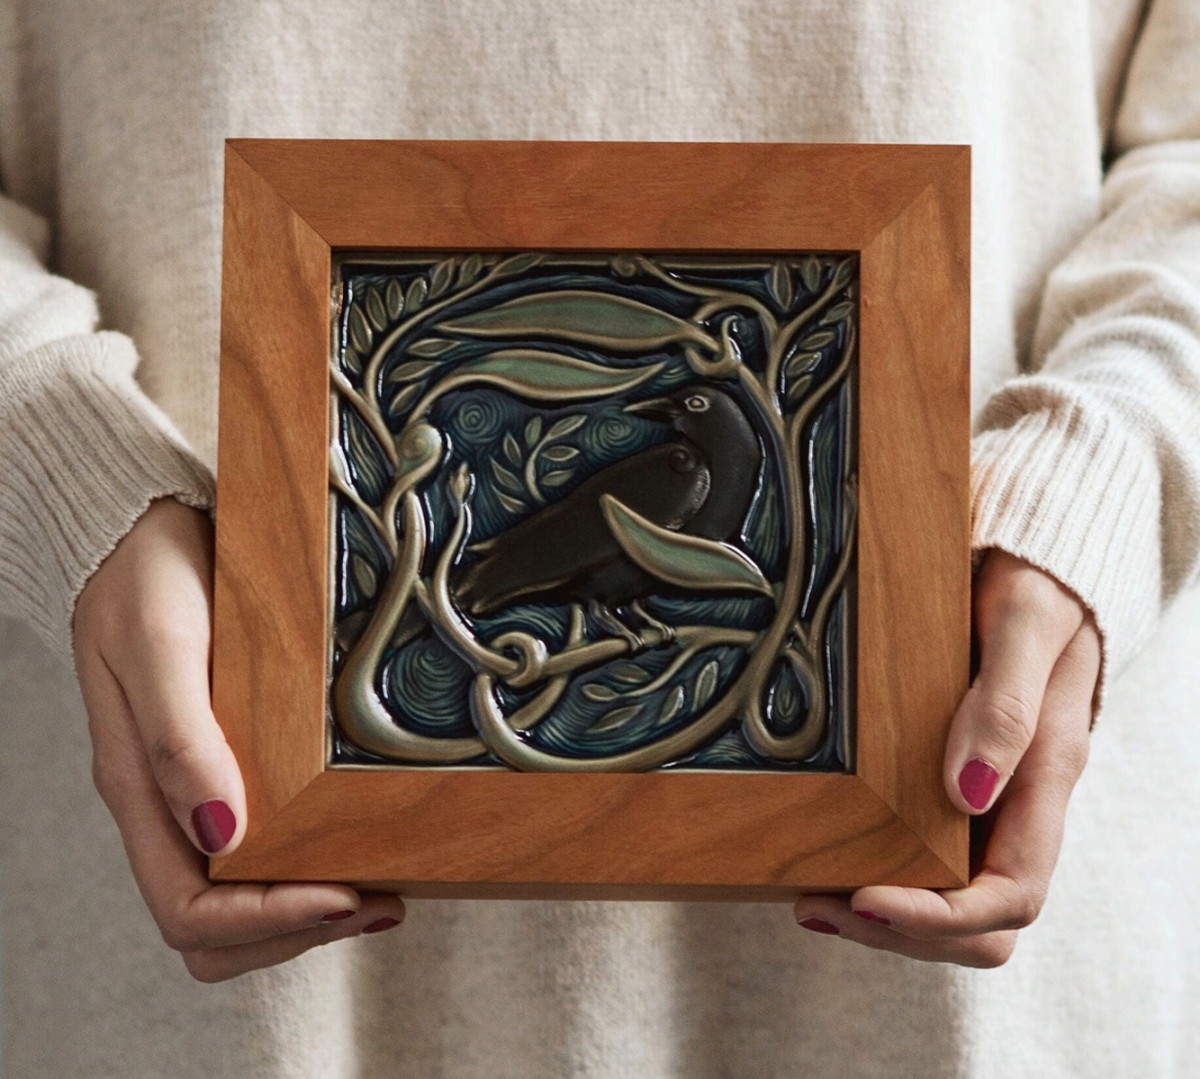 Gift tiles like the Revival Rook are available framed from the online store.